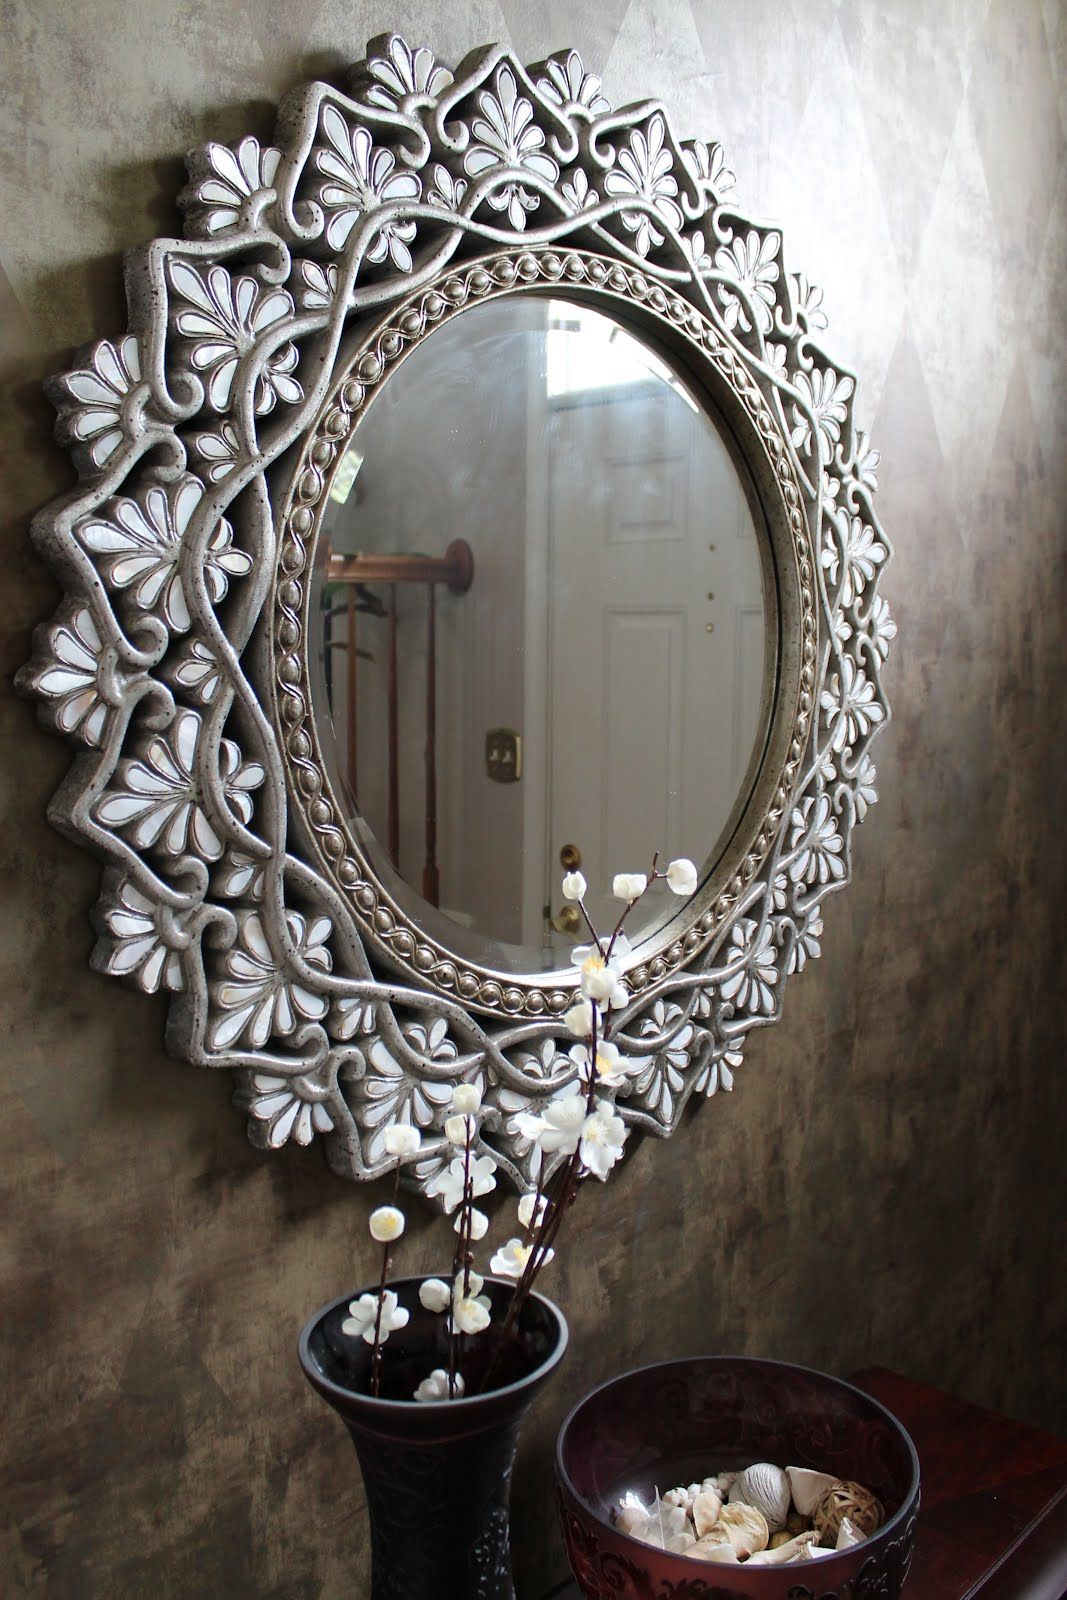 Pier 1 round shell mother of pearl mirror in an entryway for when i own a house pinterest - Wall decoration with pearls ...